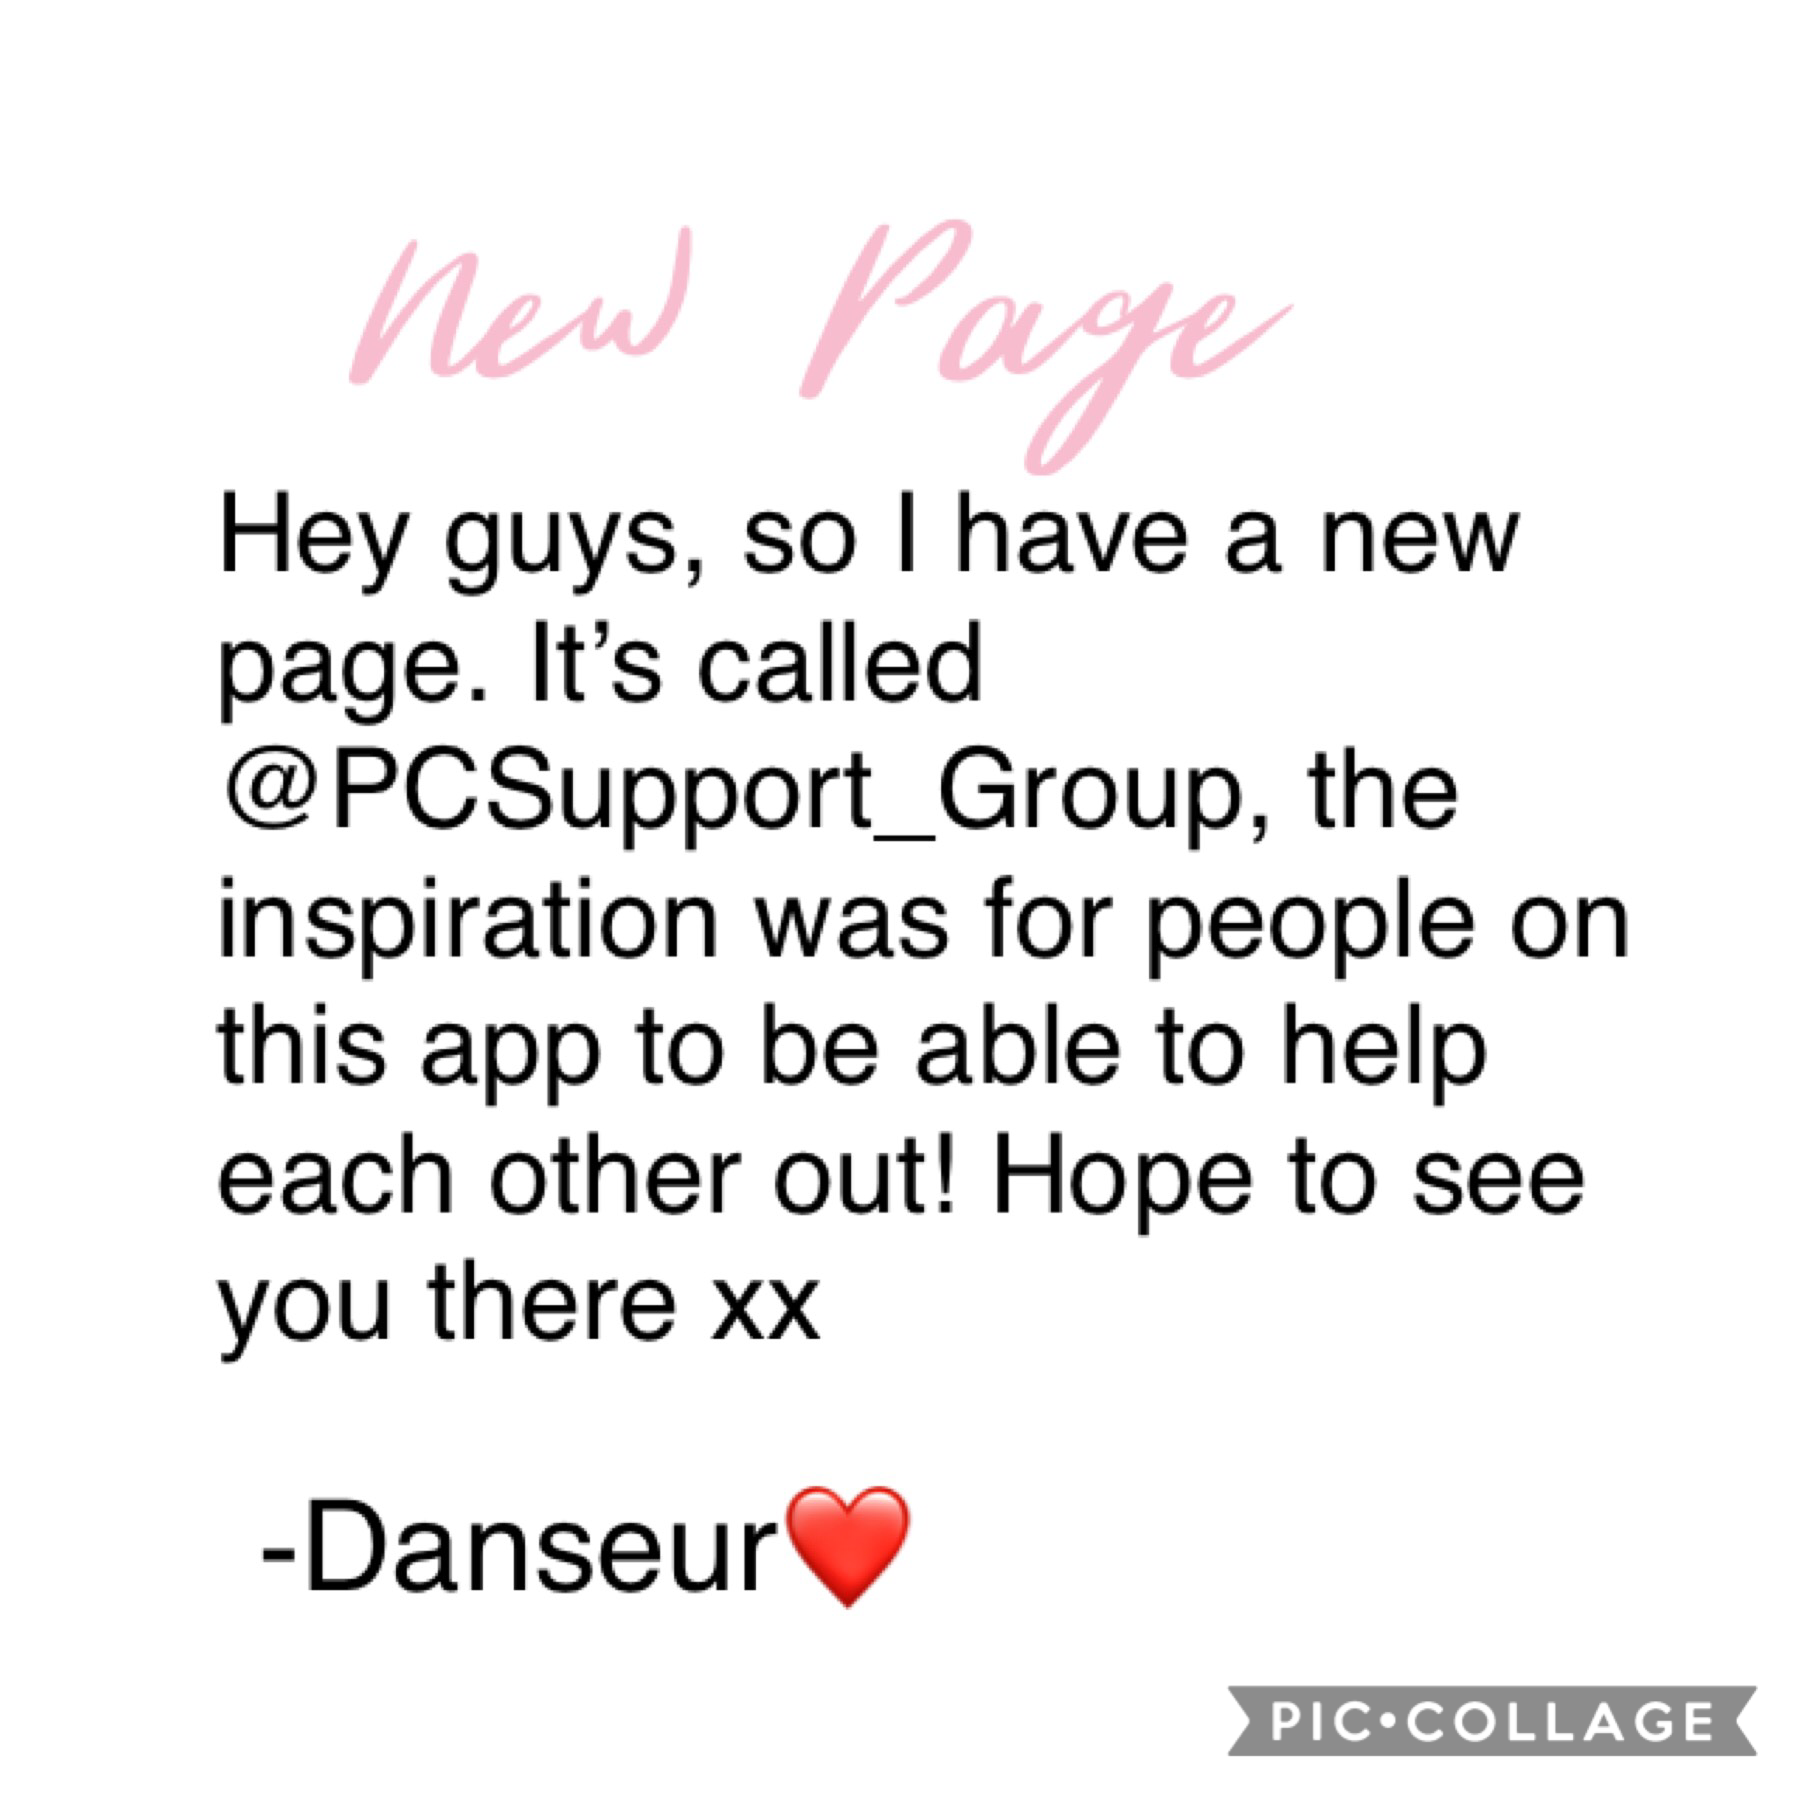 Tap Please check it out guys! And stay strong ❤️